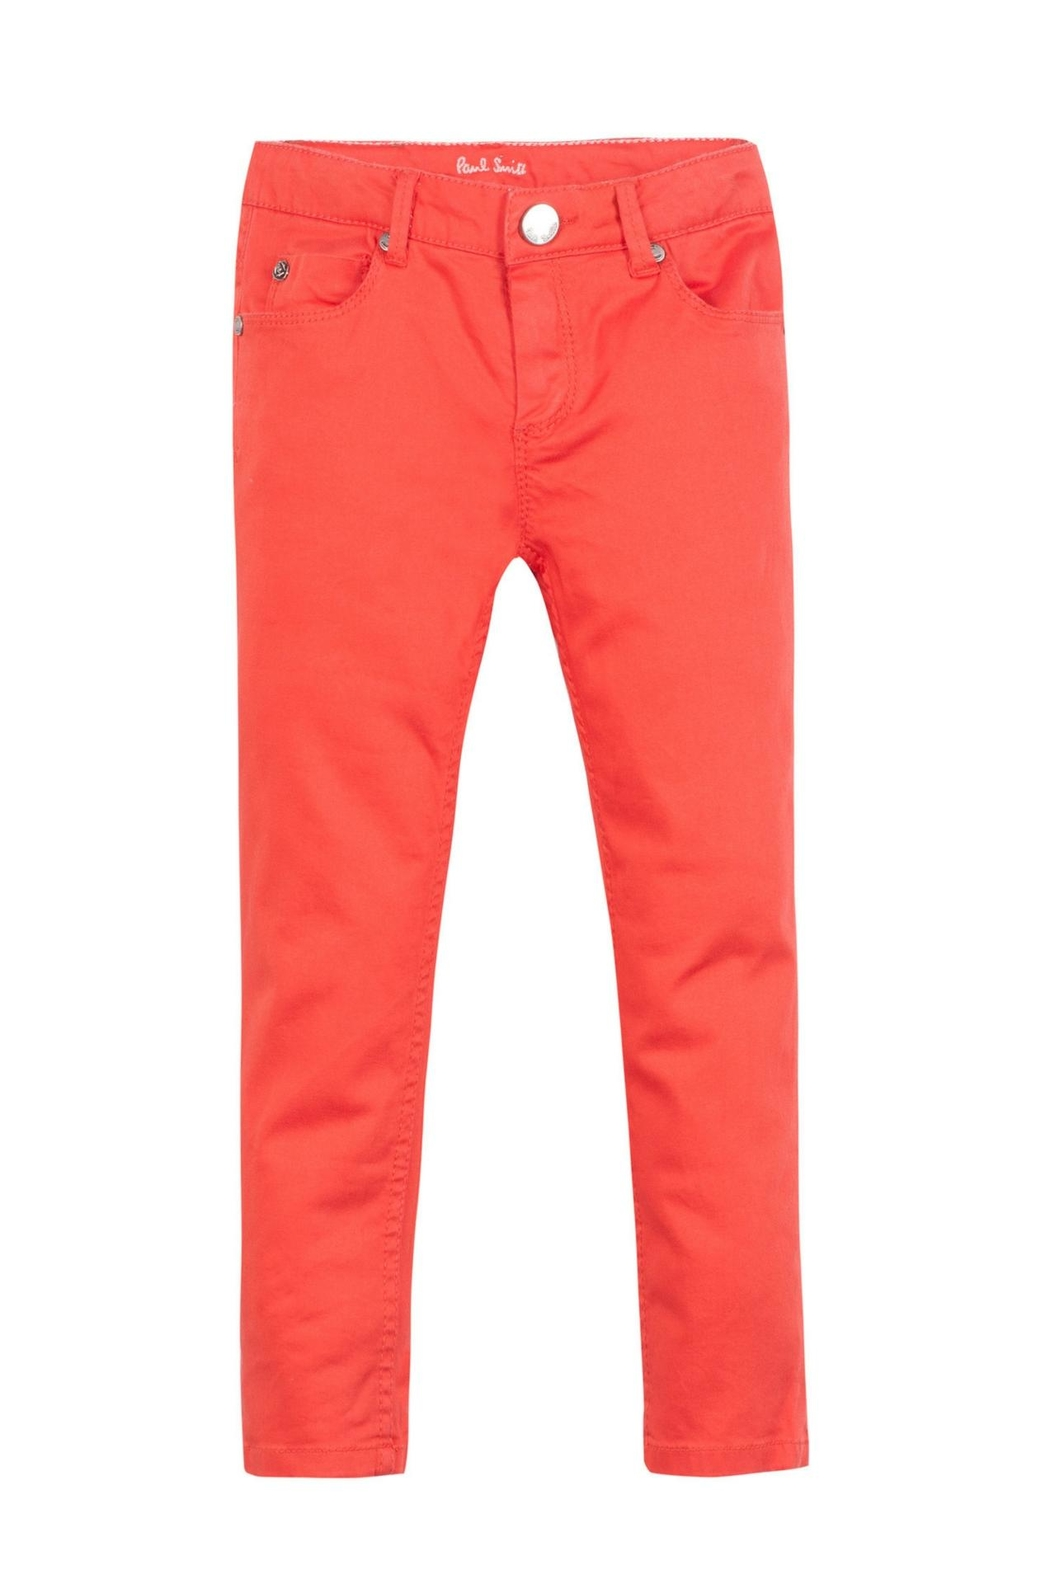 Paul Smith Junior Bright Orange Pants - Main Image